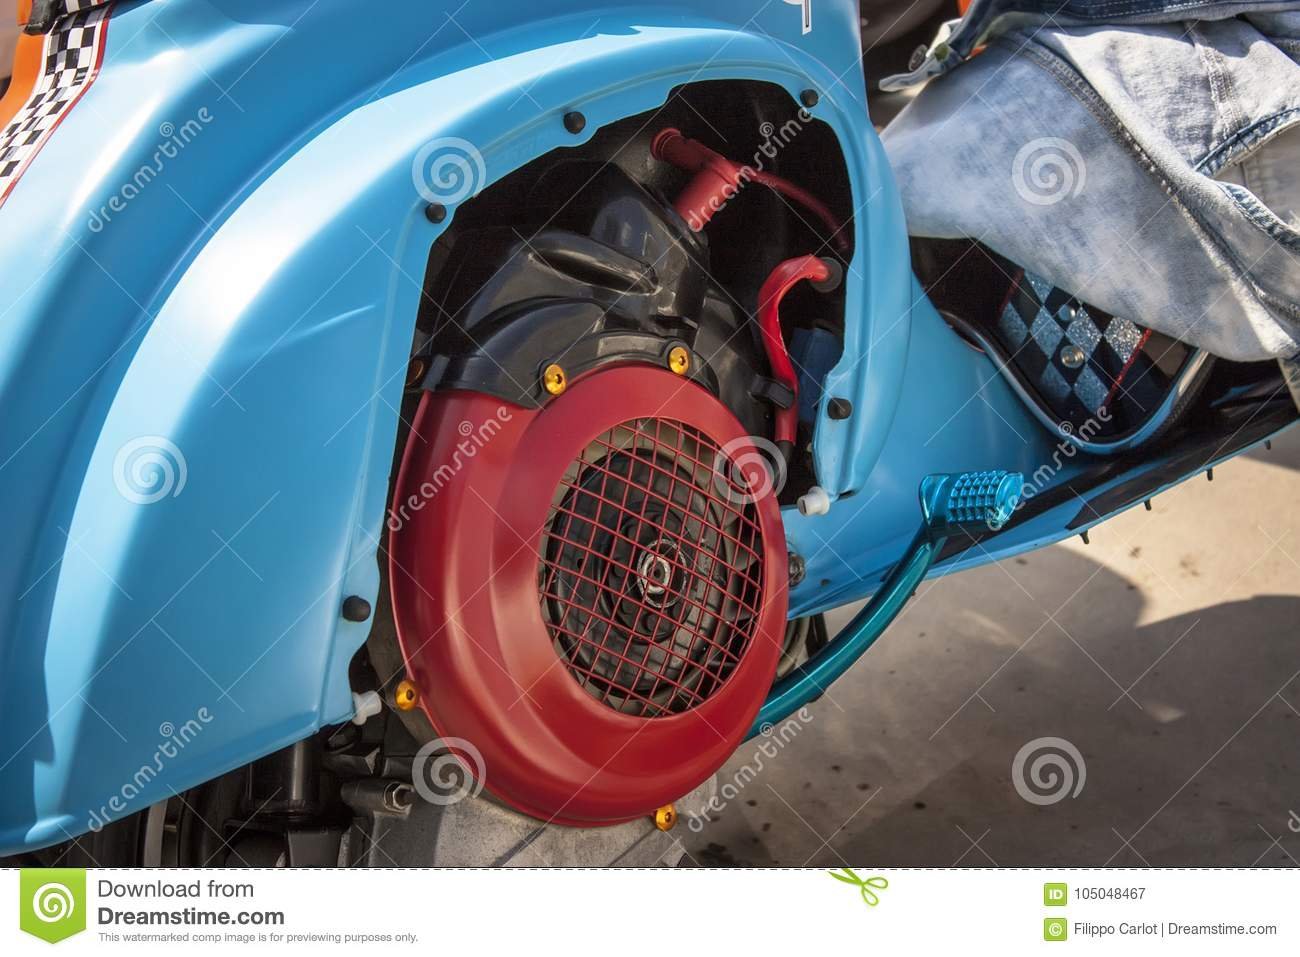 The Two-stroke Engine Of The Scooter  Stock Image - Image of candle